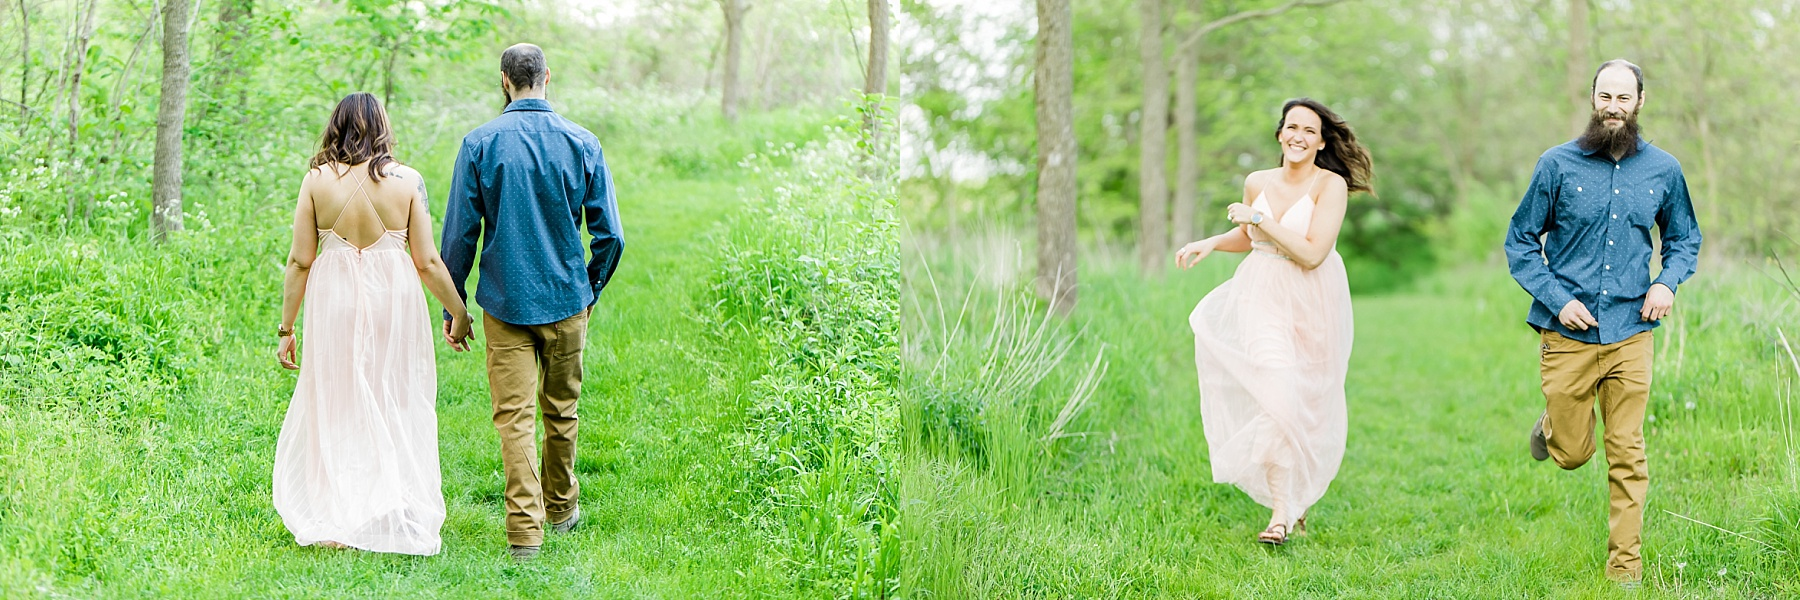 monticello indiana wedding engagement photography simple adventure weird_0023.jpg